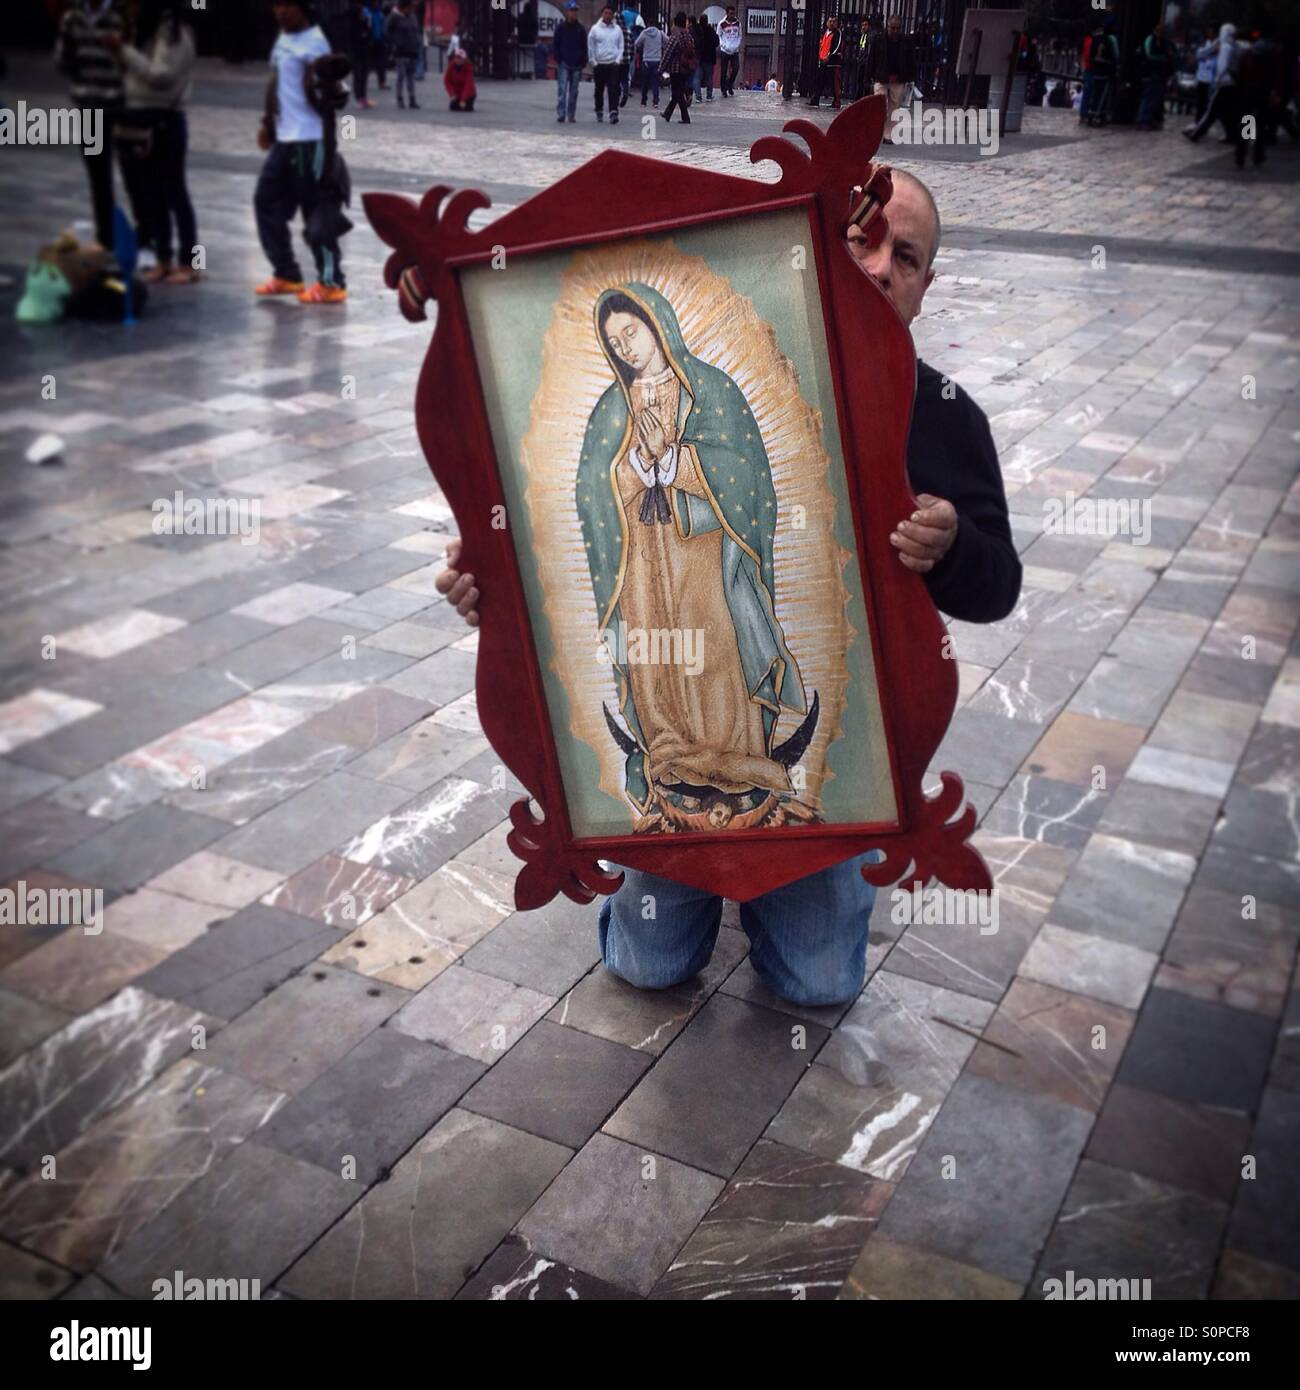 A pilgrim carries a picture as he walks on his knees during the pilgrimage to the Basilica of Our Lady of Guadalupe, - Stock Image